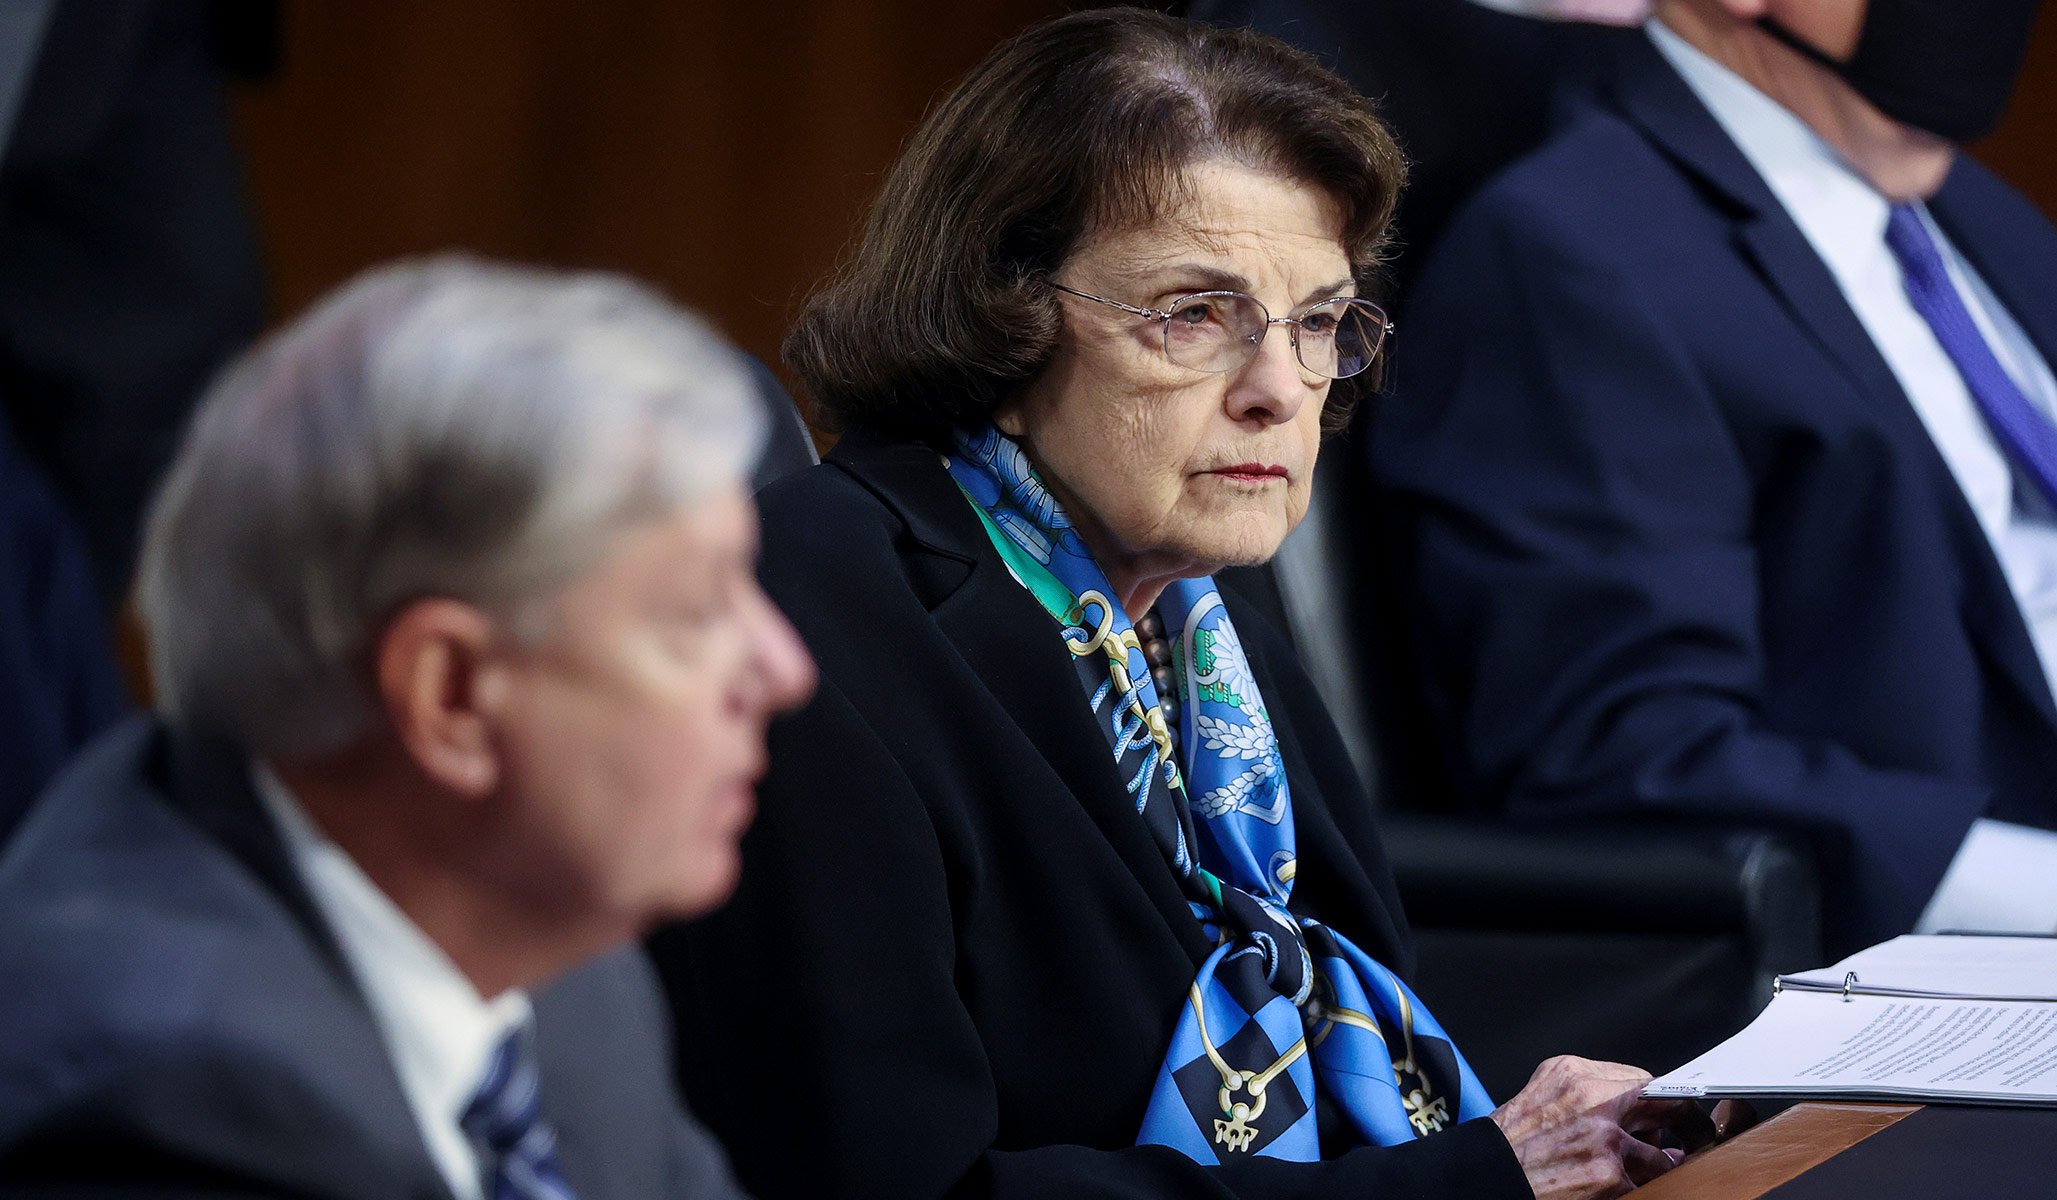 amy coney barrett hearings dianne feinstein thanks lindsey graham national review dianne feinstein thanks lindsey graham